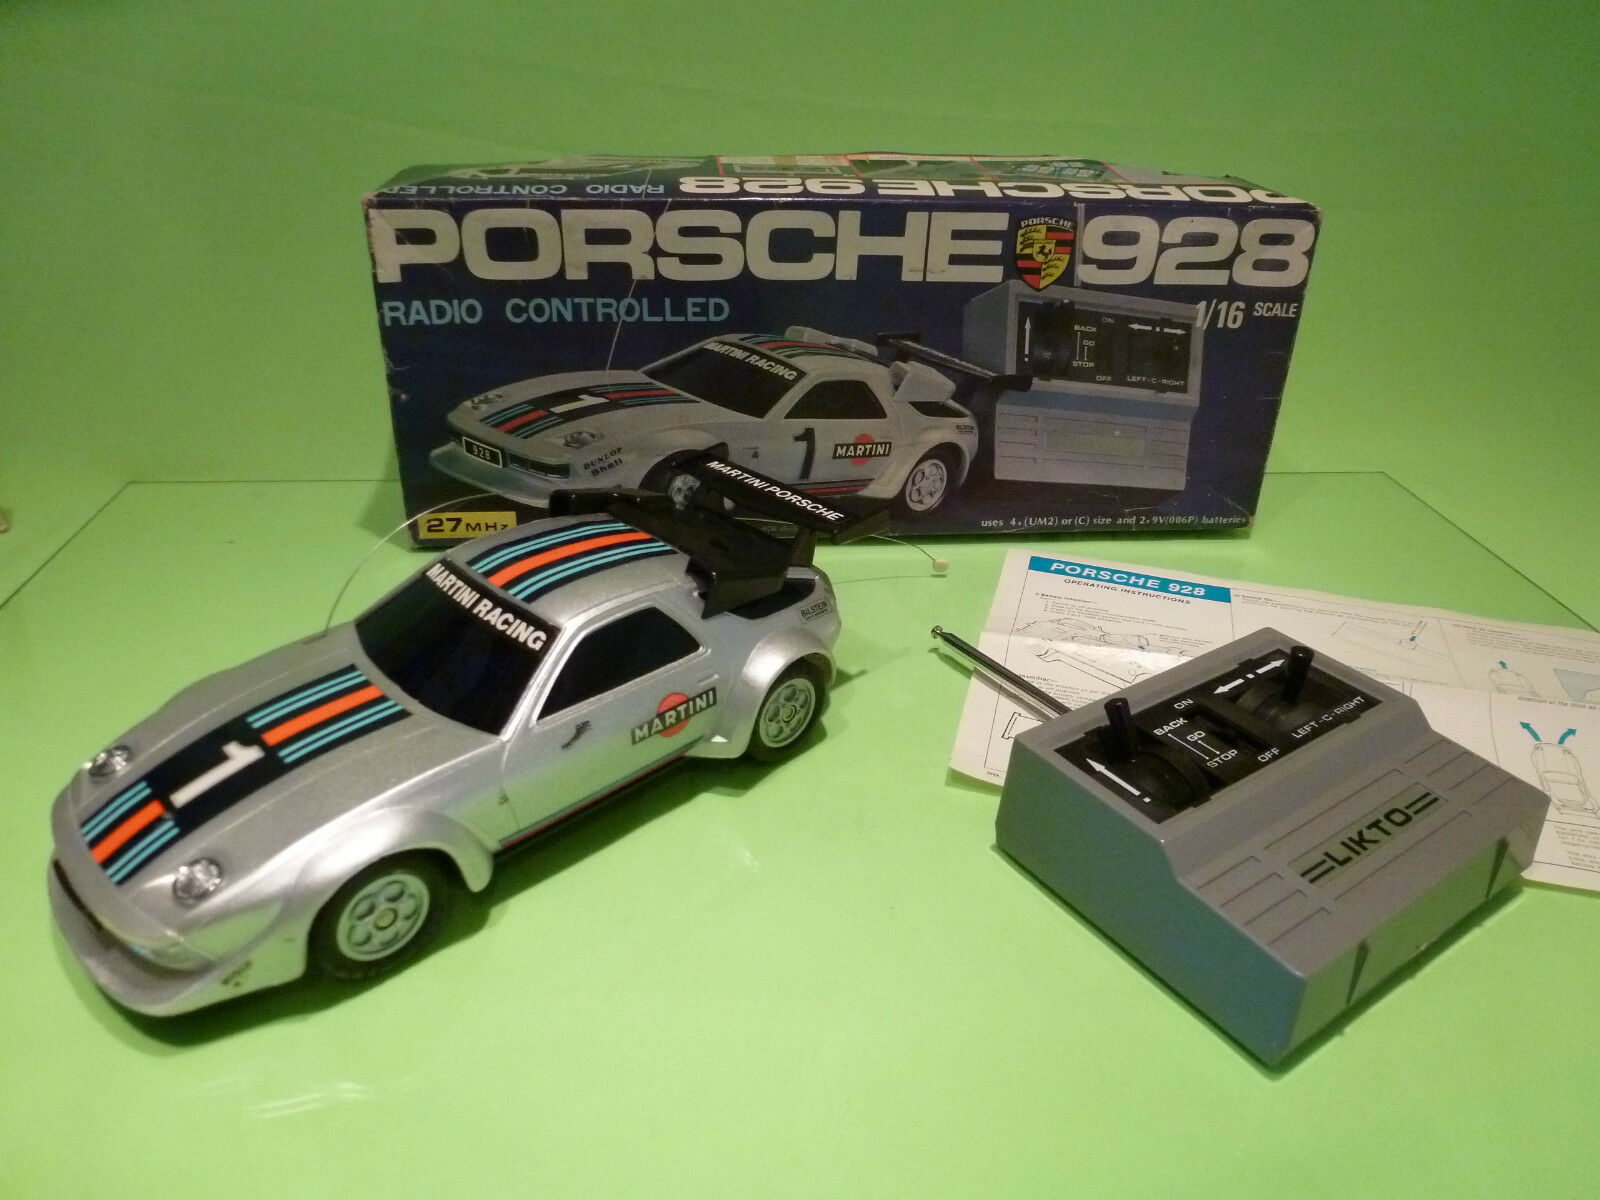 RC RADIO CONTROL 555SC PORSCHE 928 - RALLY blanco 1 16 - EXCELLENT IN BOX -SCHUCO